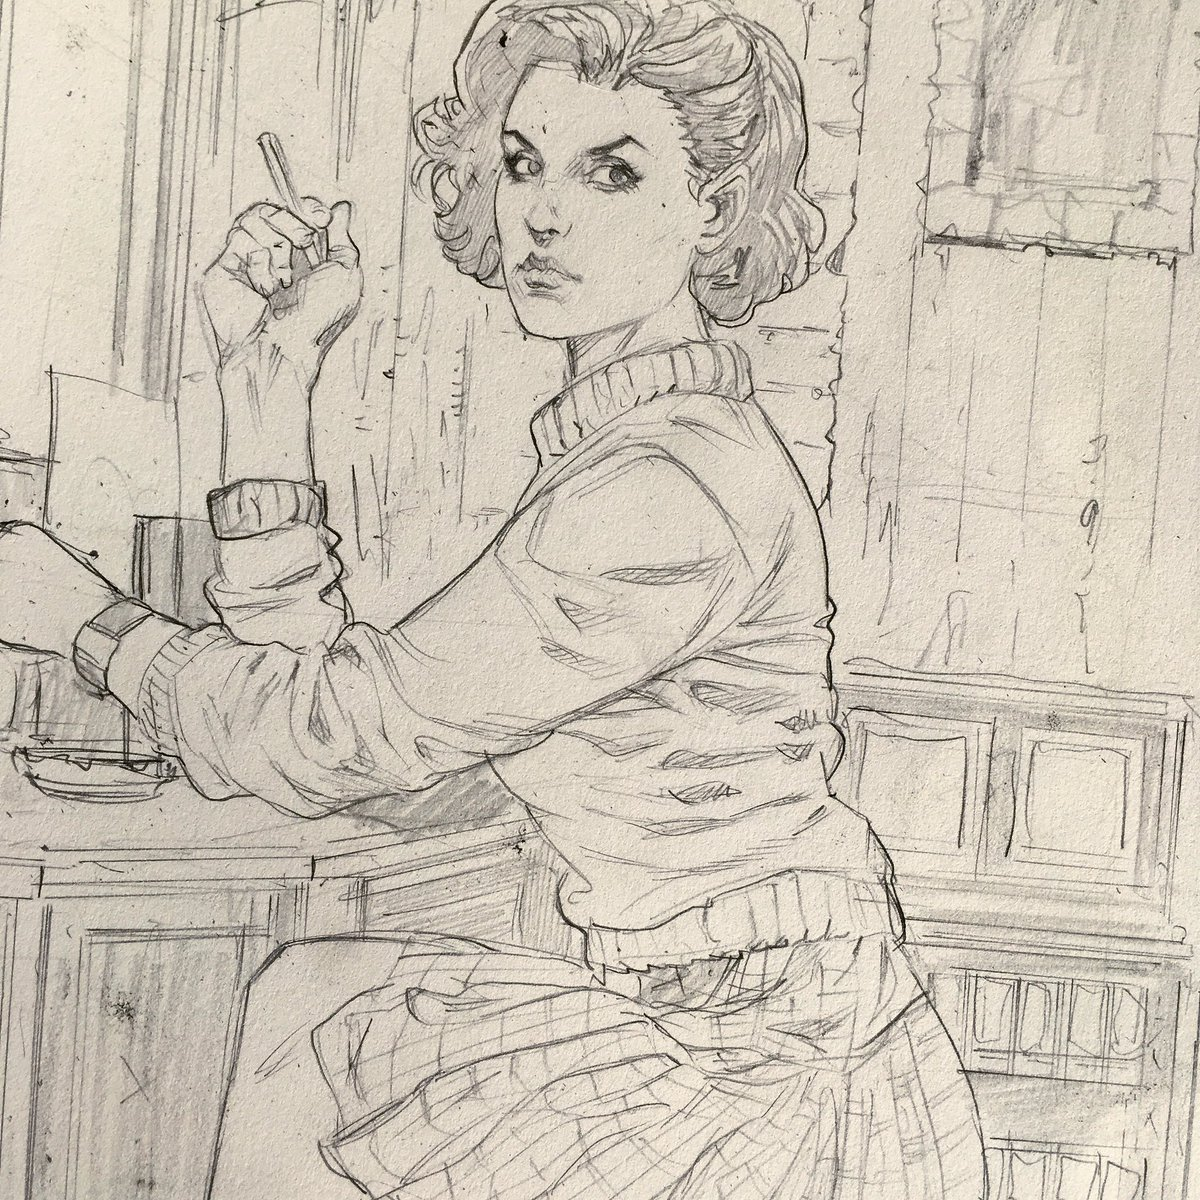 Next commission is Audrey Horne, Twin Peaks. Pencil sketch. https://t.co/oYTcdze2iJ